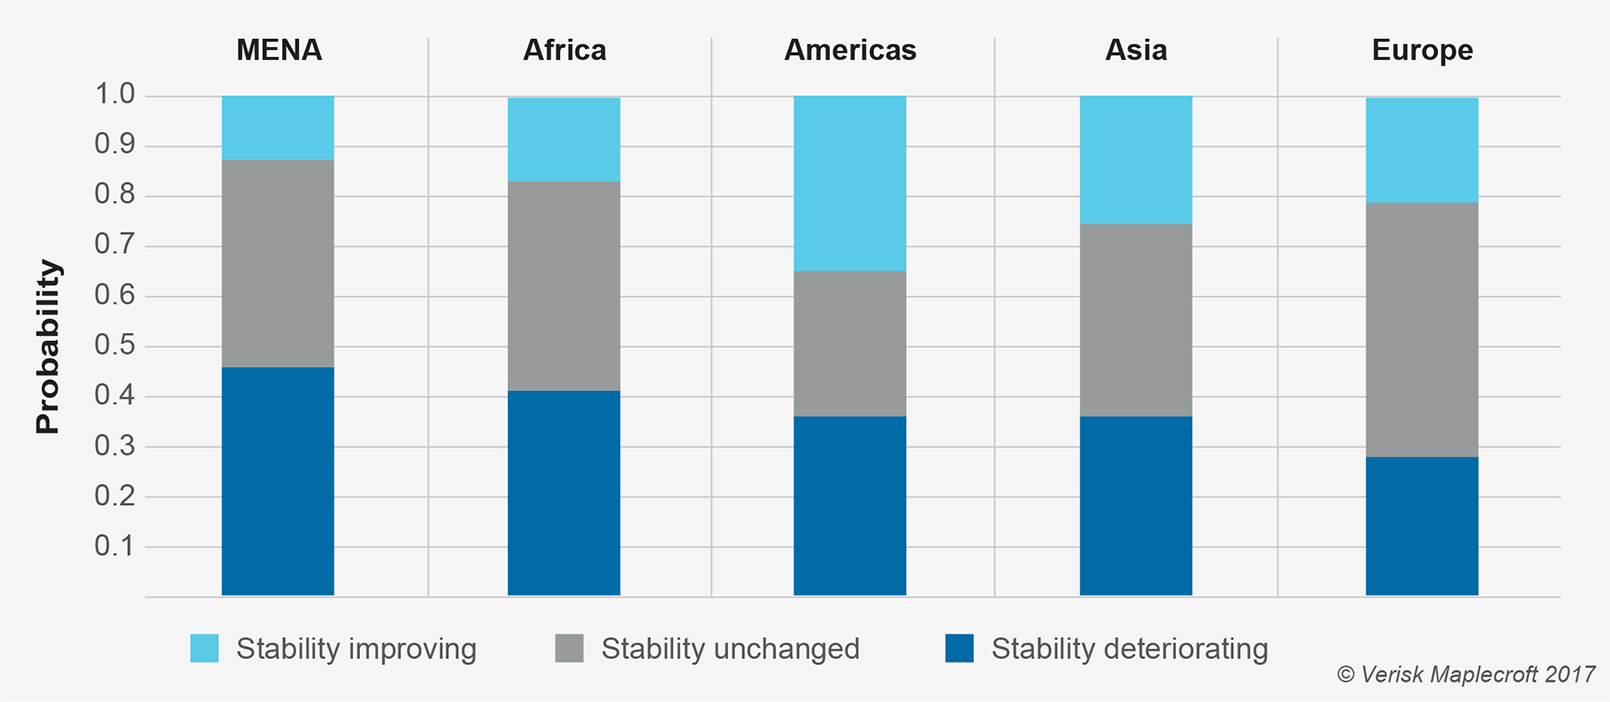 Average probability of change in Government Stability Index Projection score for 2019, by region